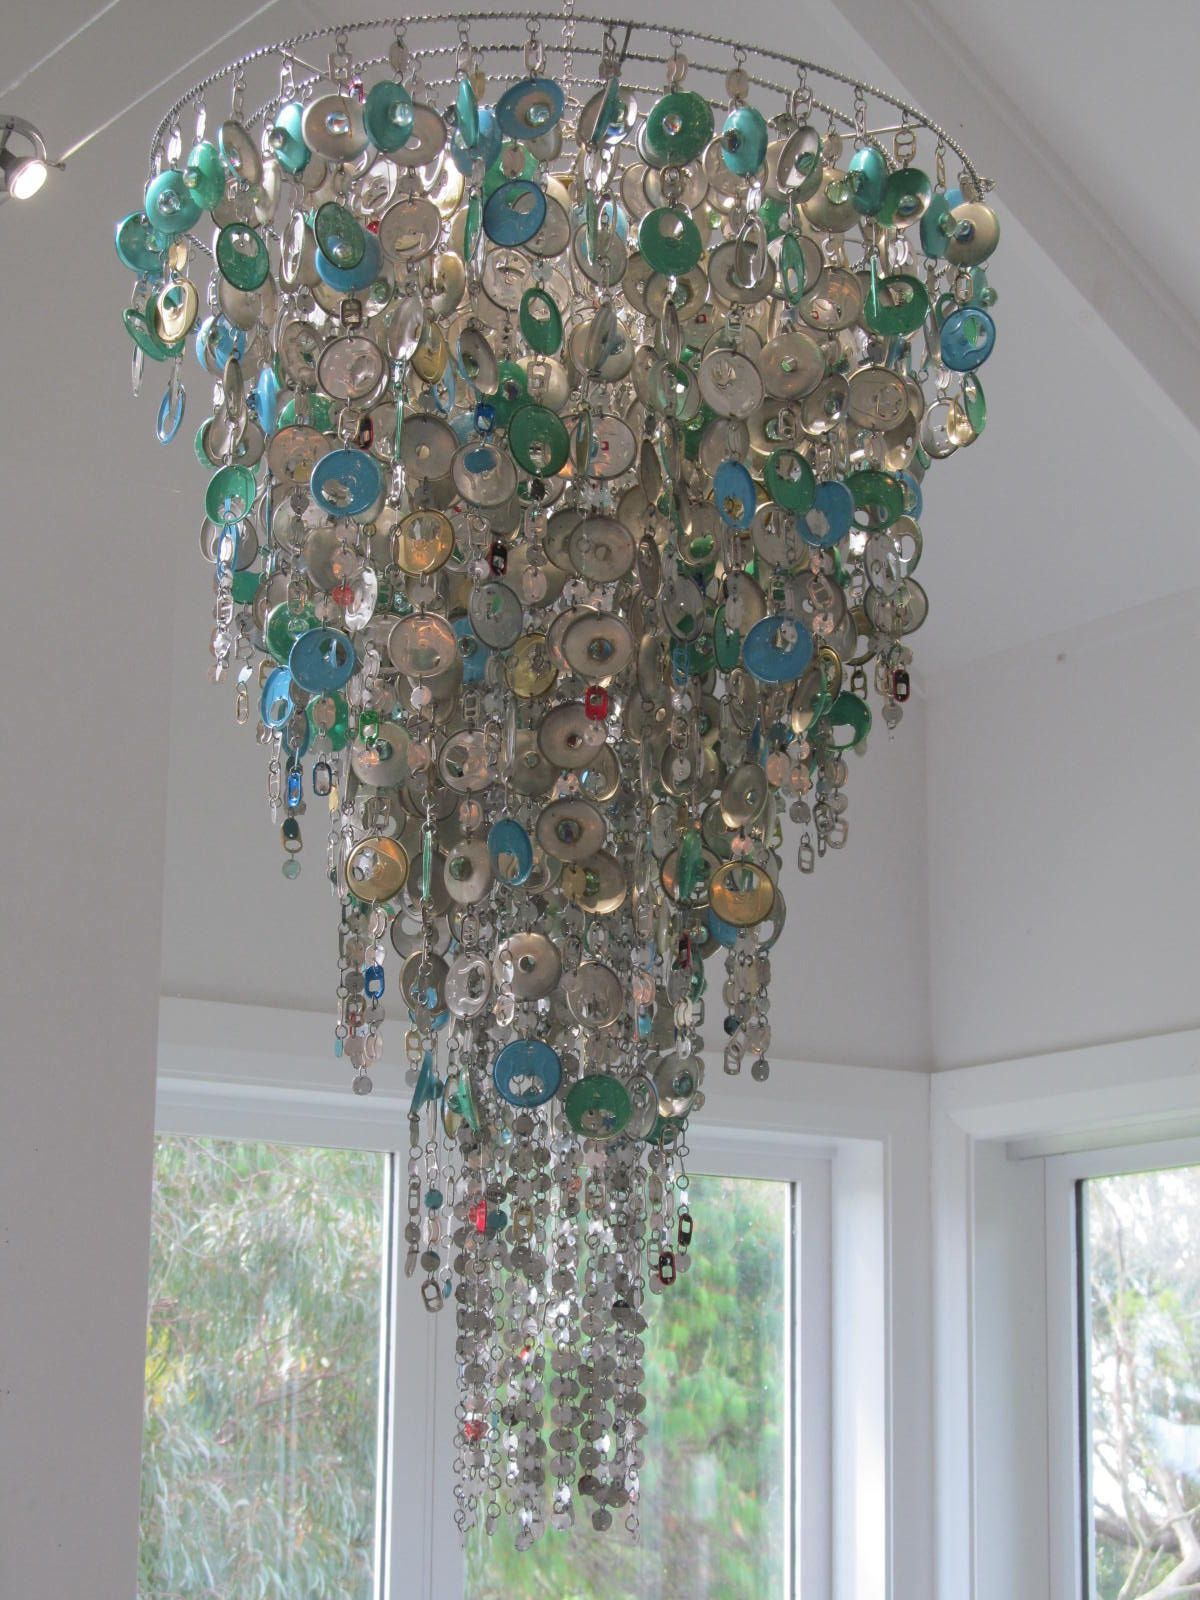 Kaye diraus wonderful hand crafted chandeliers made from recycled kaye diraus wonderful hand crafted chandeliers made from recycled tin cans and ready to hang and arubaitofo Images